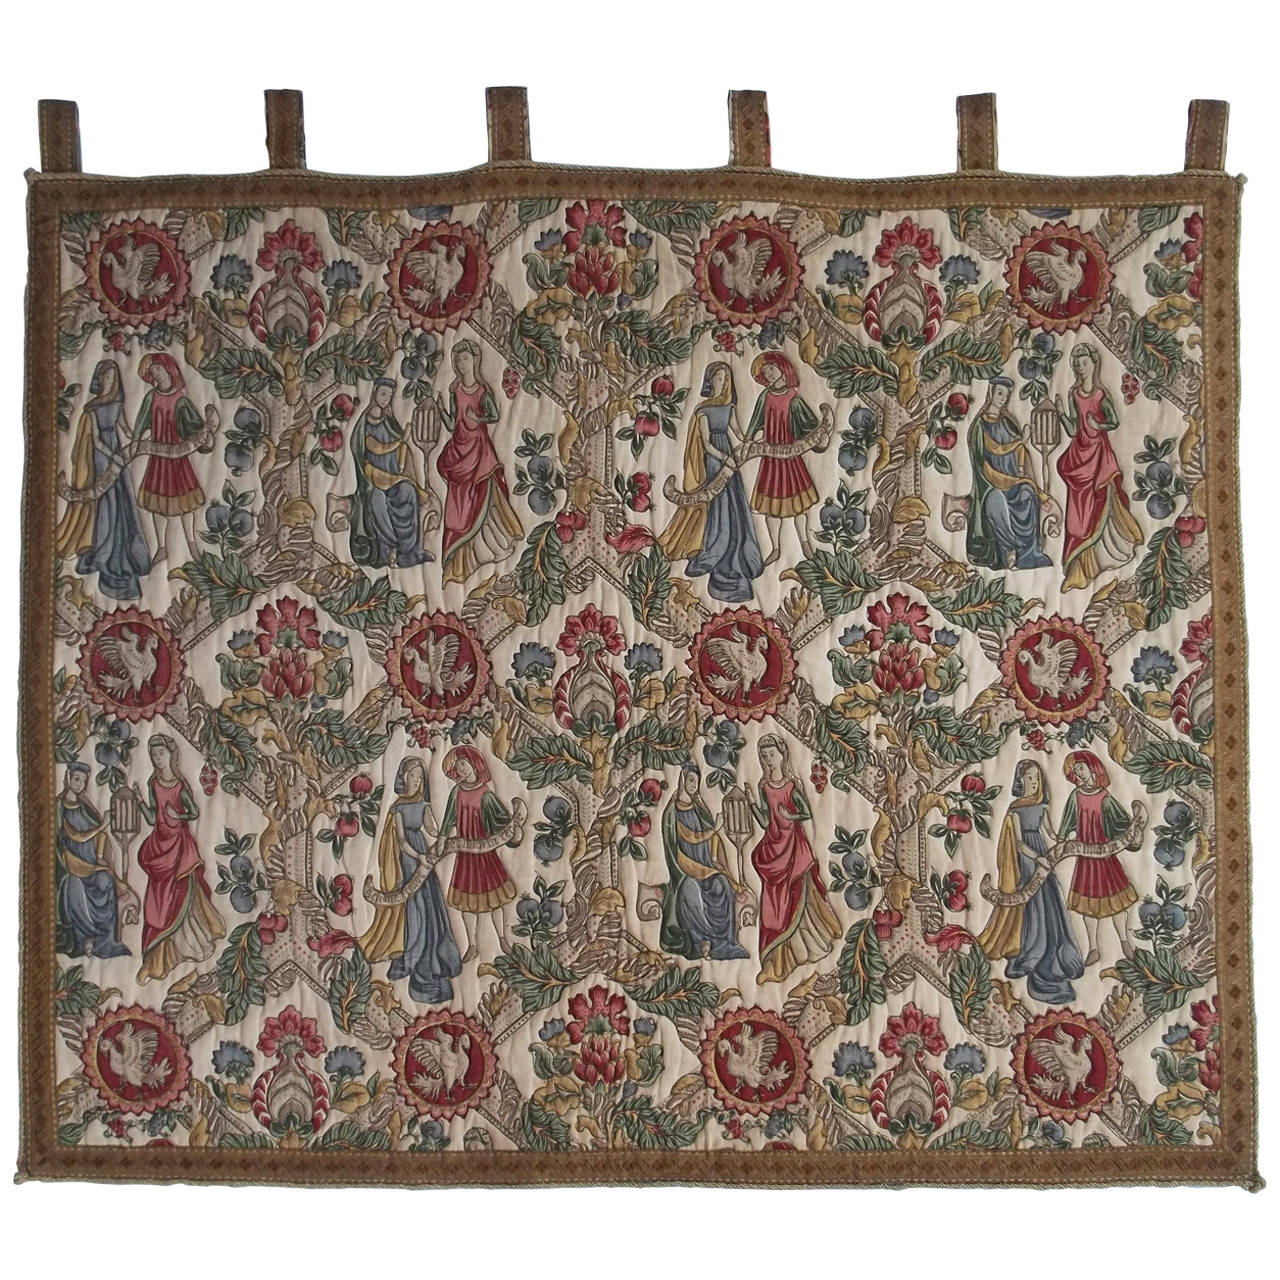 French Tapestry in the Medieval Aubusson Style, Early 20th Century